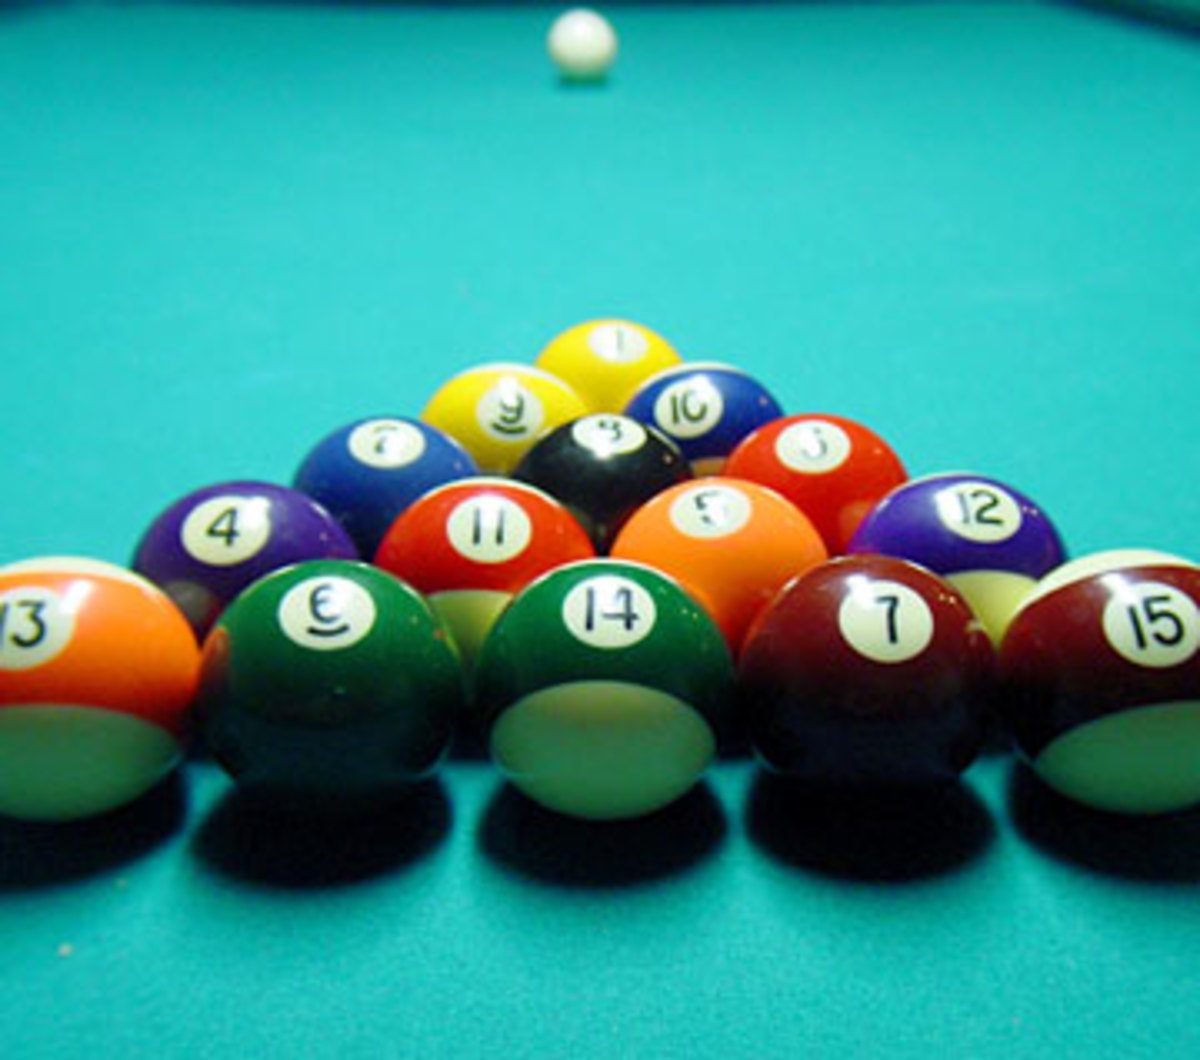 The Beauty Of Pool - A Close Up Of The 8 Best Players In The Carolinas